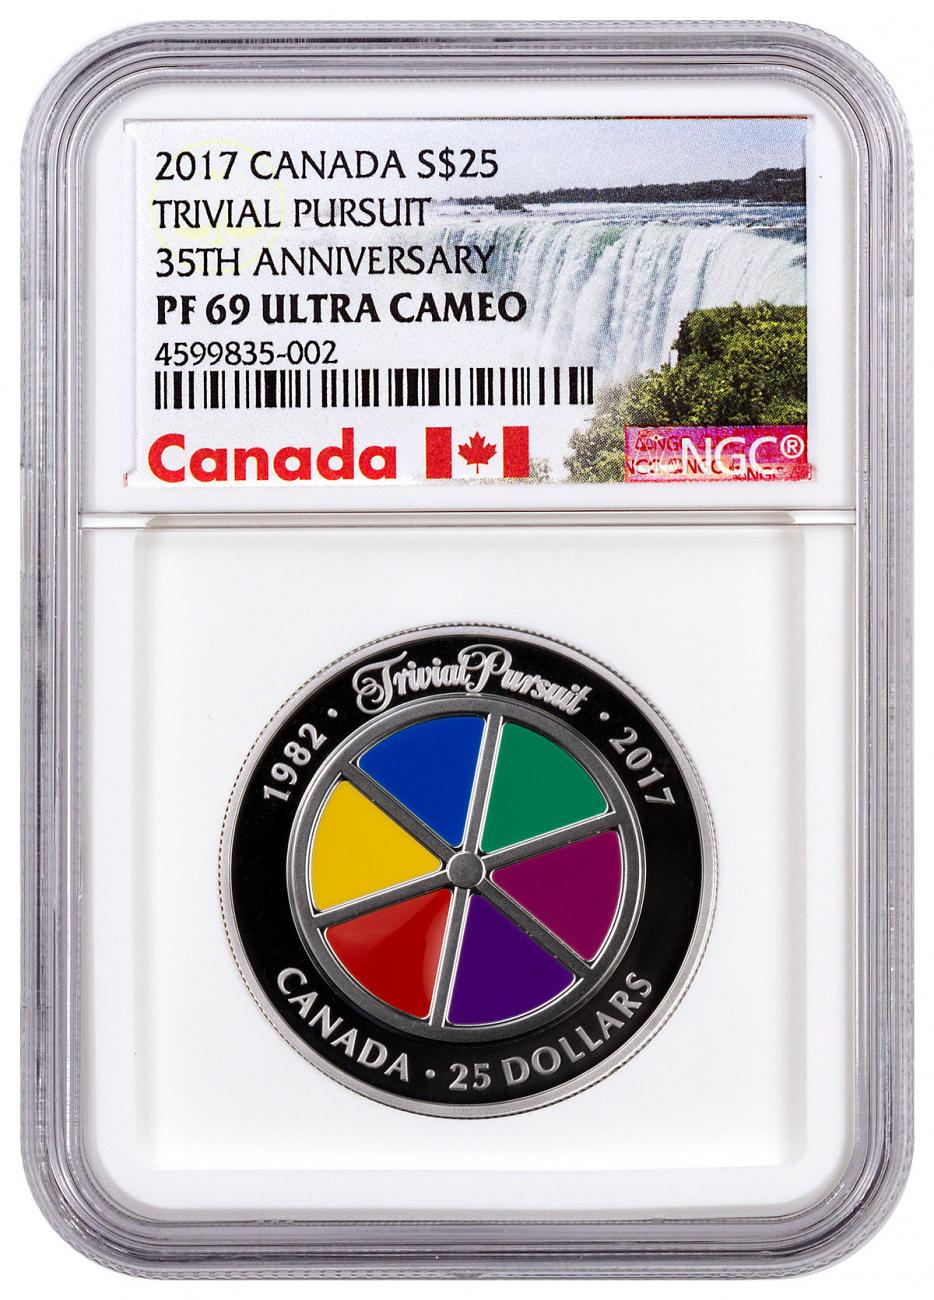 2017 Canada Trivial Pursuit 35th Anniversary Piedfort 1 oz Silver Enameled Proof $25 Coin NGC PF69 UC Exclusive Canada Label